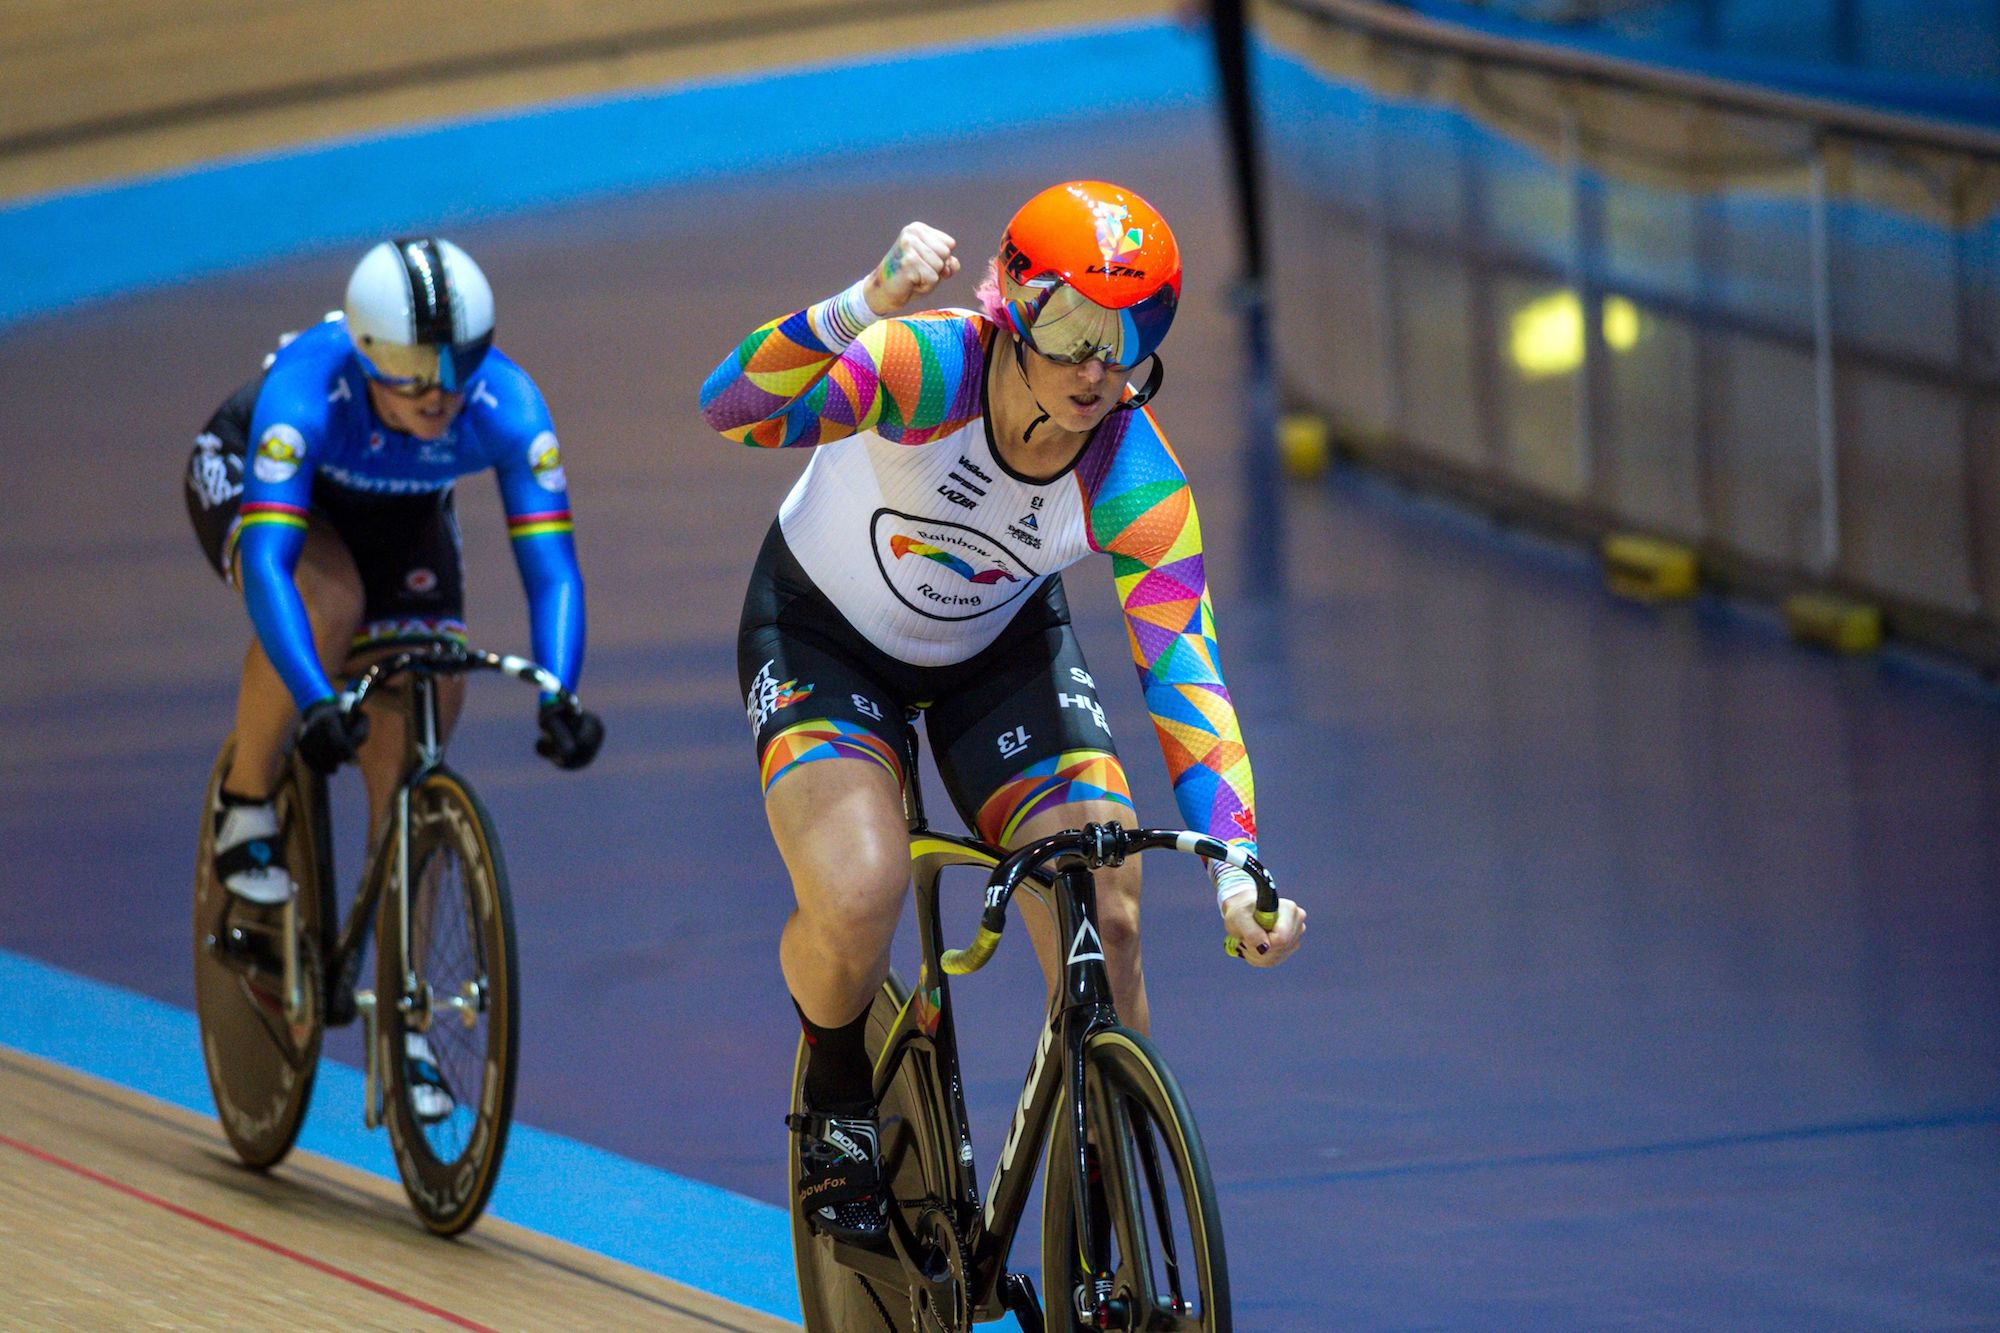 Transgender athlete Rachel McKinnon defends track world title